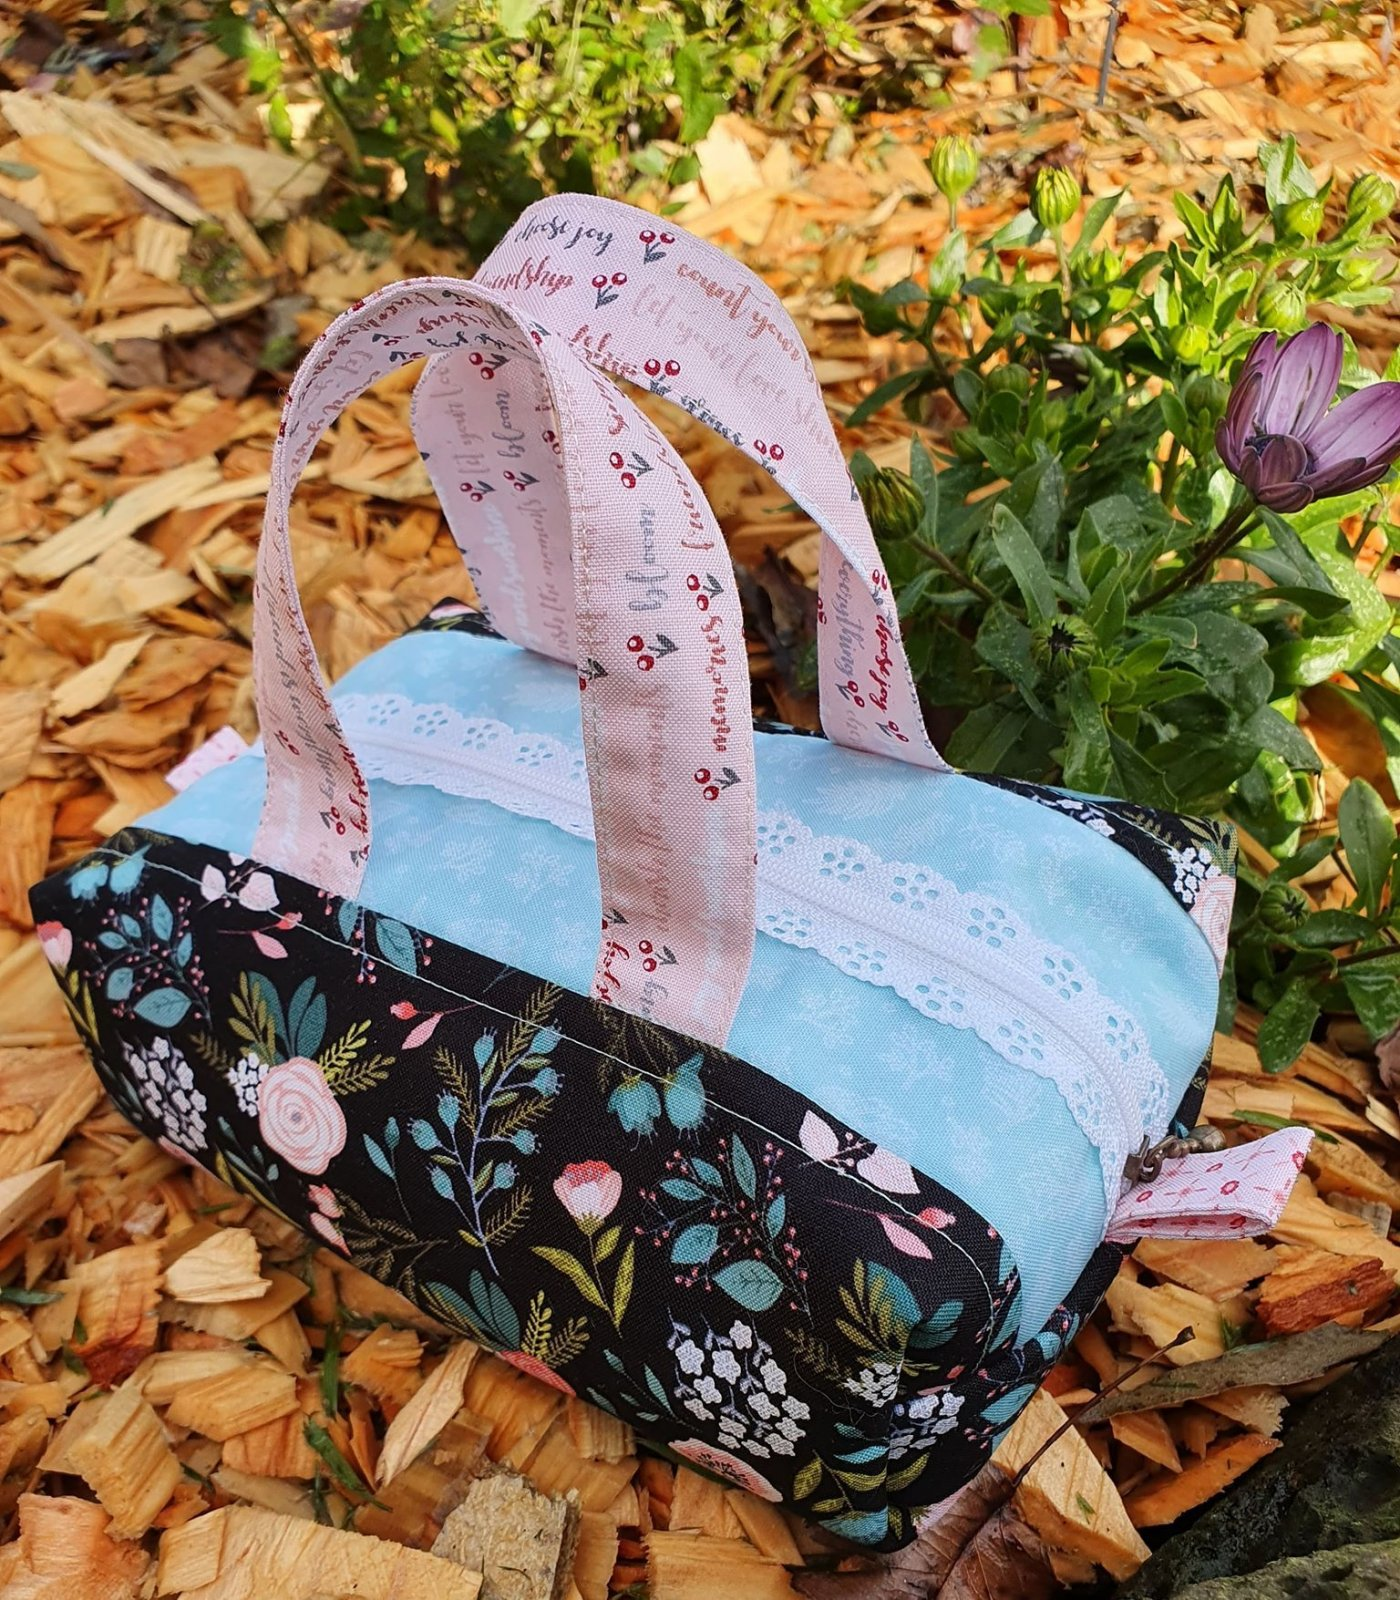 Stitch in Spring Bag kit